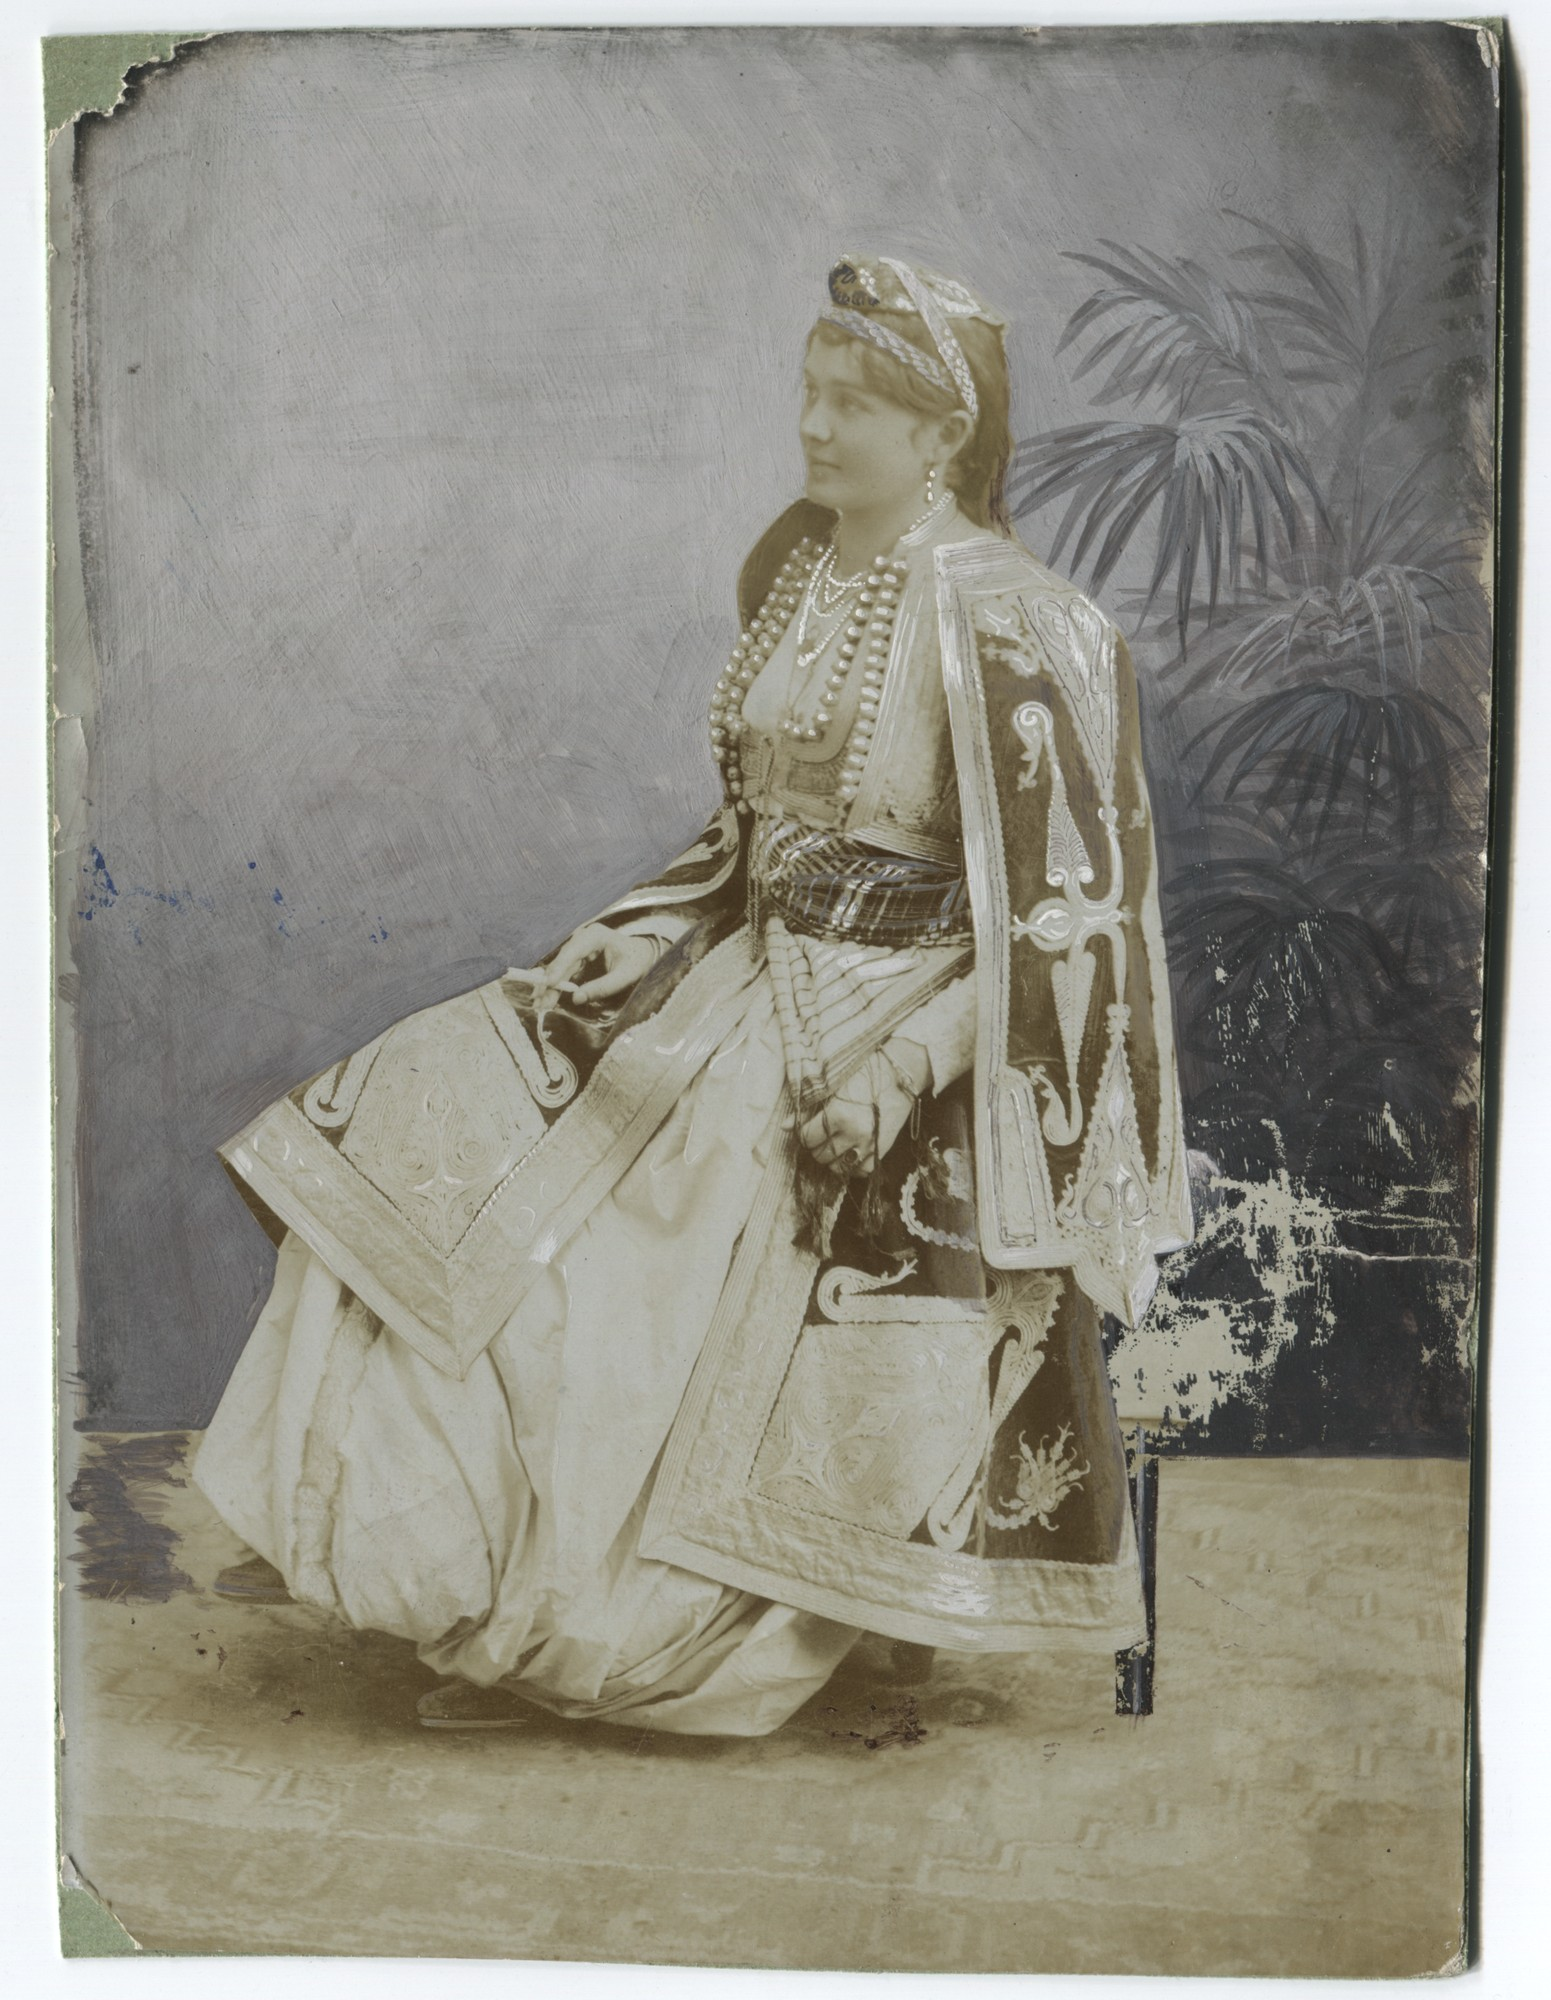 Studio portrait of a costly dressed townswoman, © The Historical Archive of Sarajevo